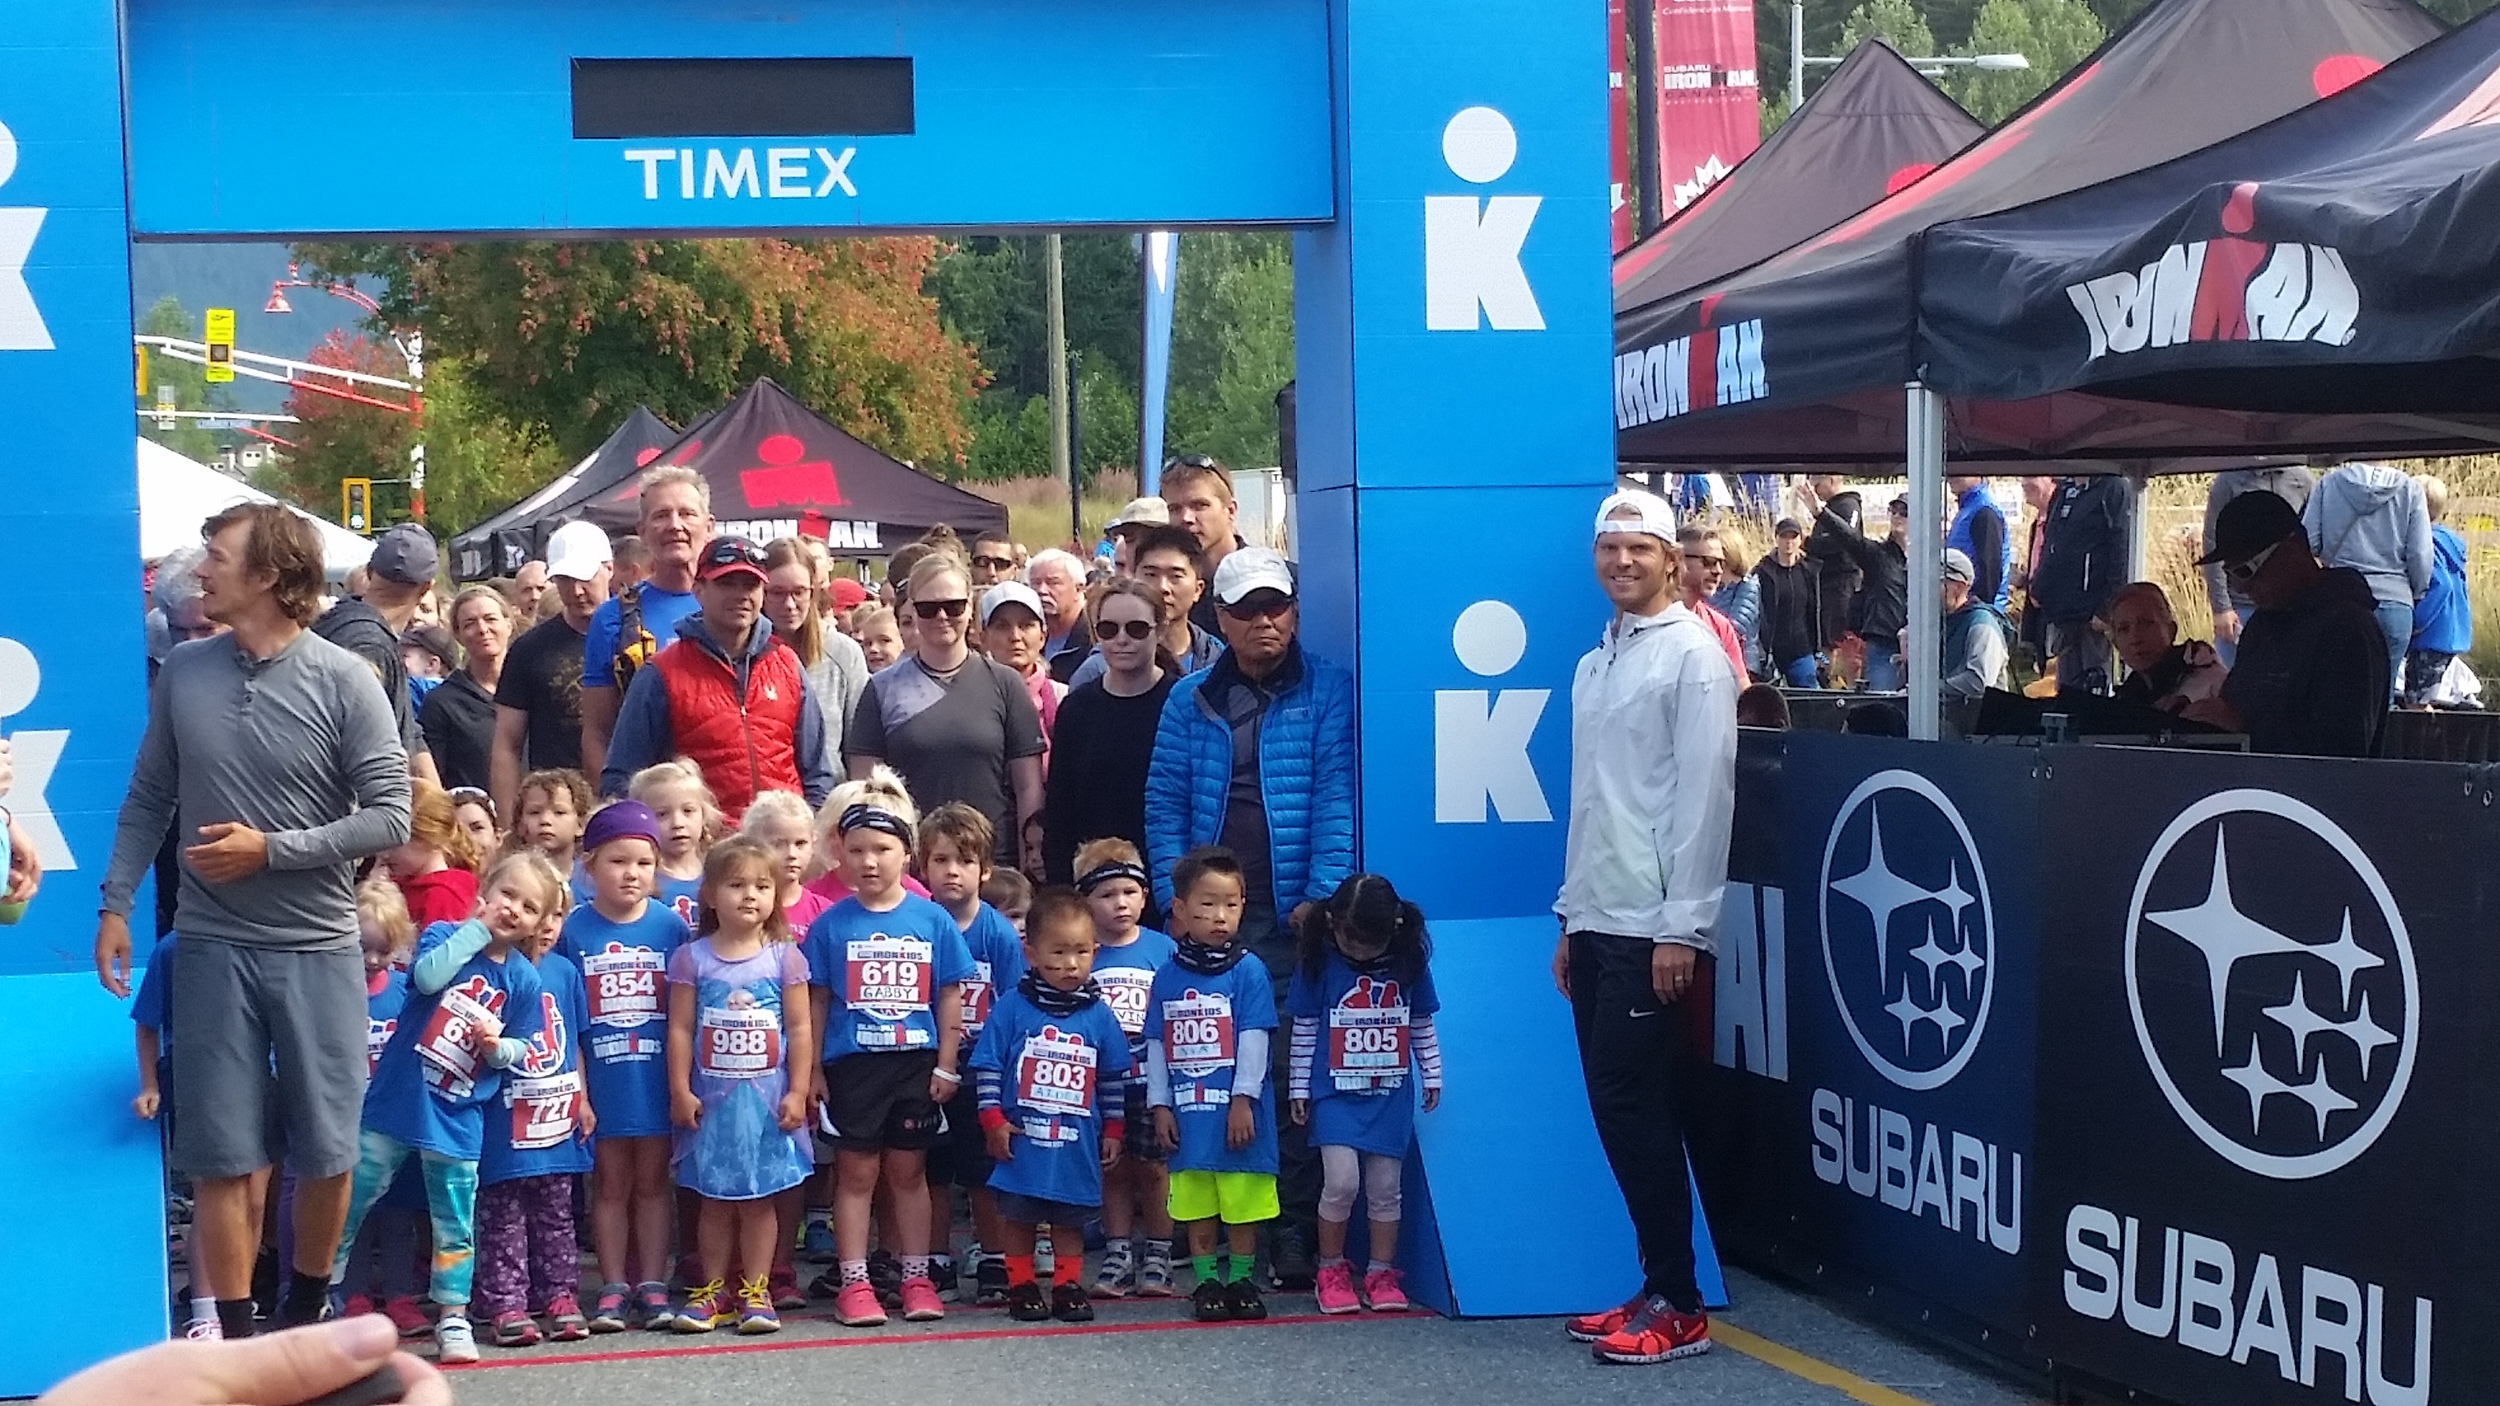 Saturday morning I helped out with the Ironkids run. More than 500 kids participated. Always great energy here.